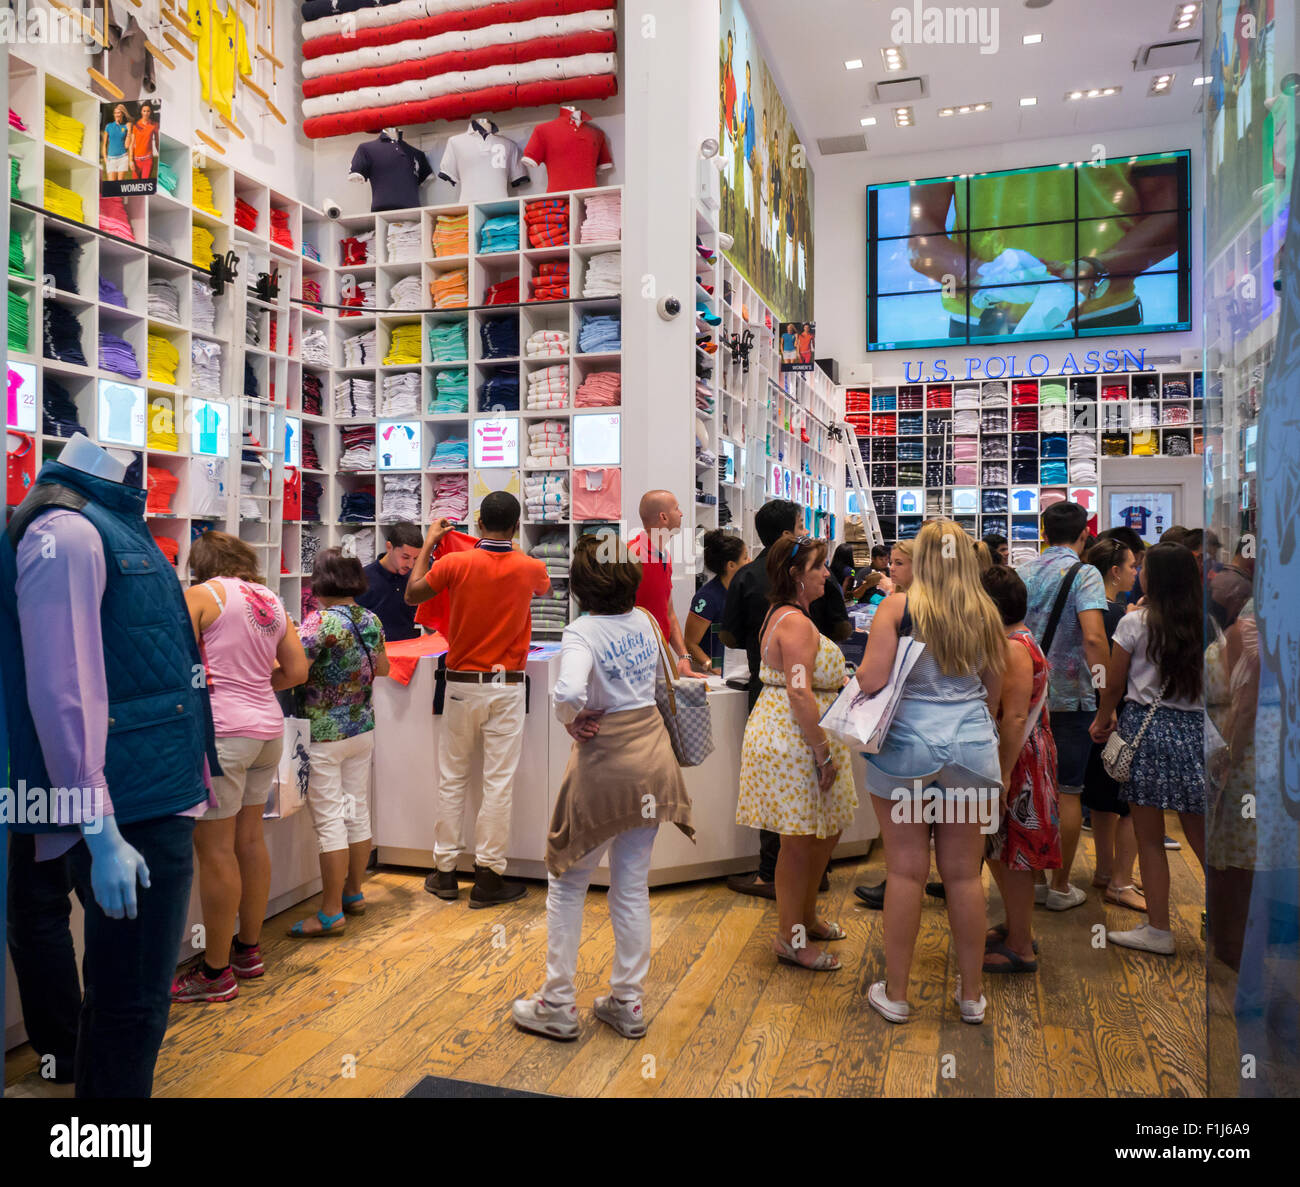 Shoppers in the U.S. Polo Assn. flagship store in Times Square in New York  on 219f5d233a